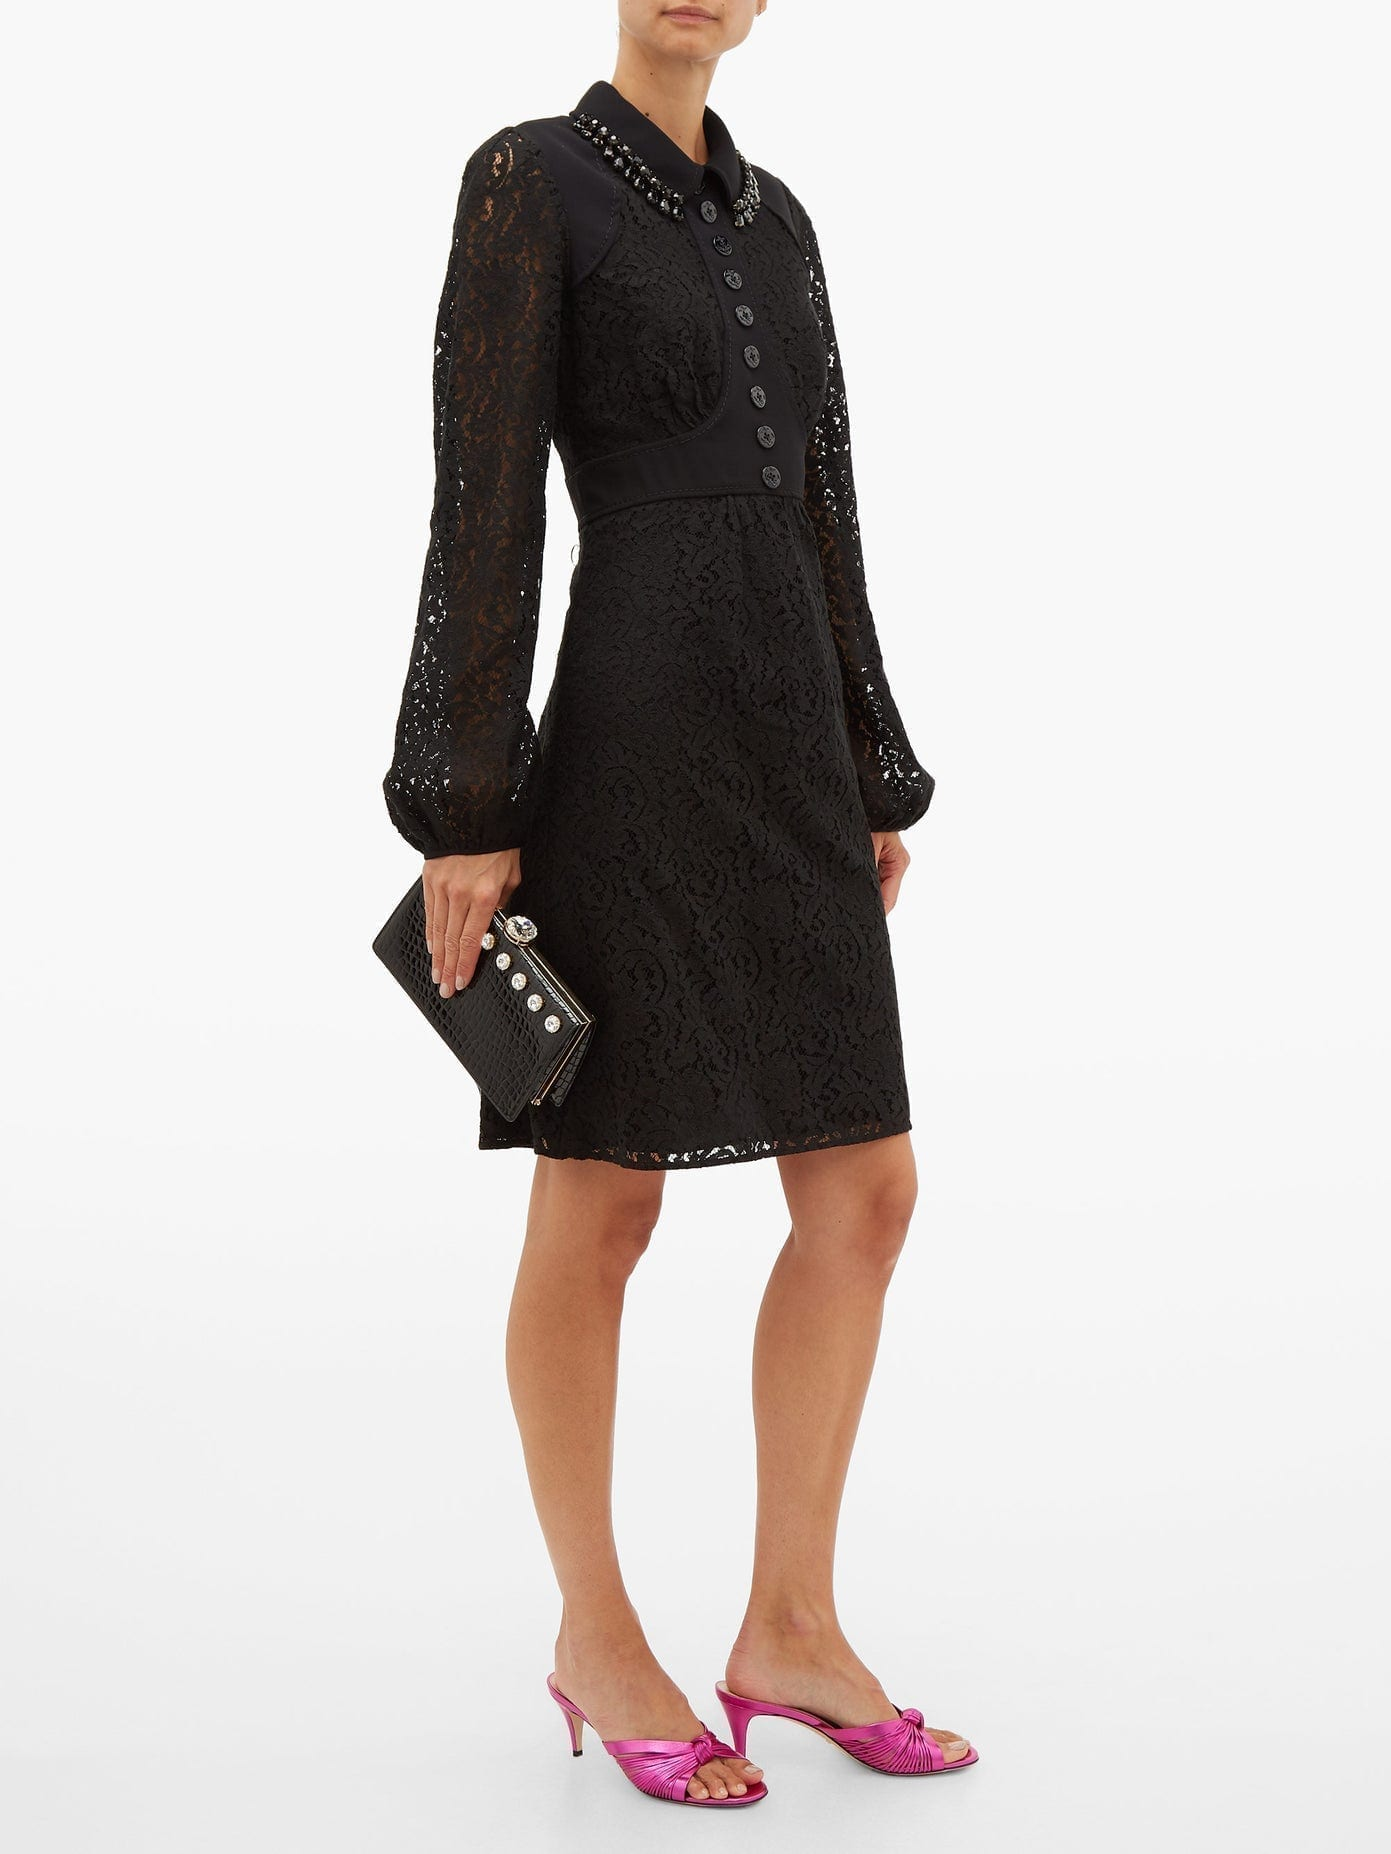 NO. 21 Crystal-embellished Cotton-blend Lace Dress